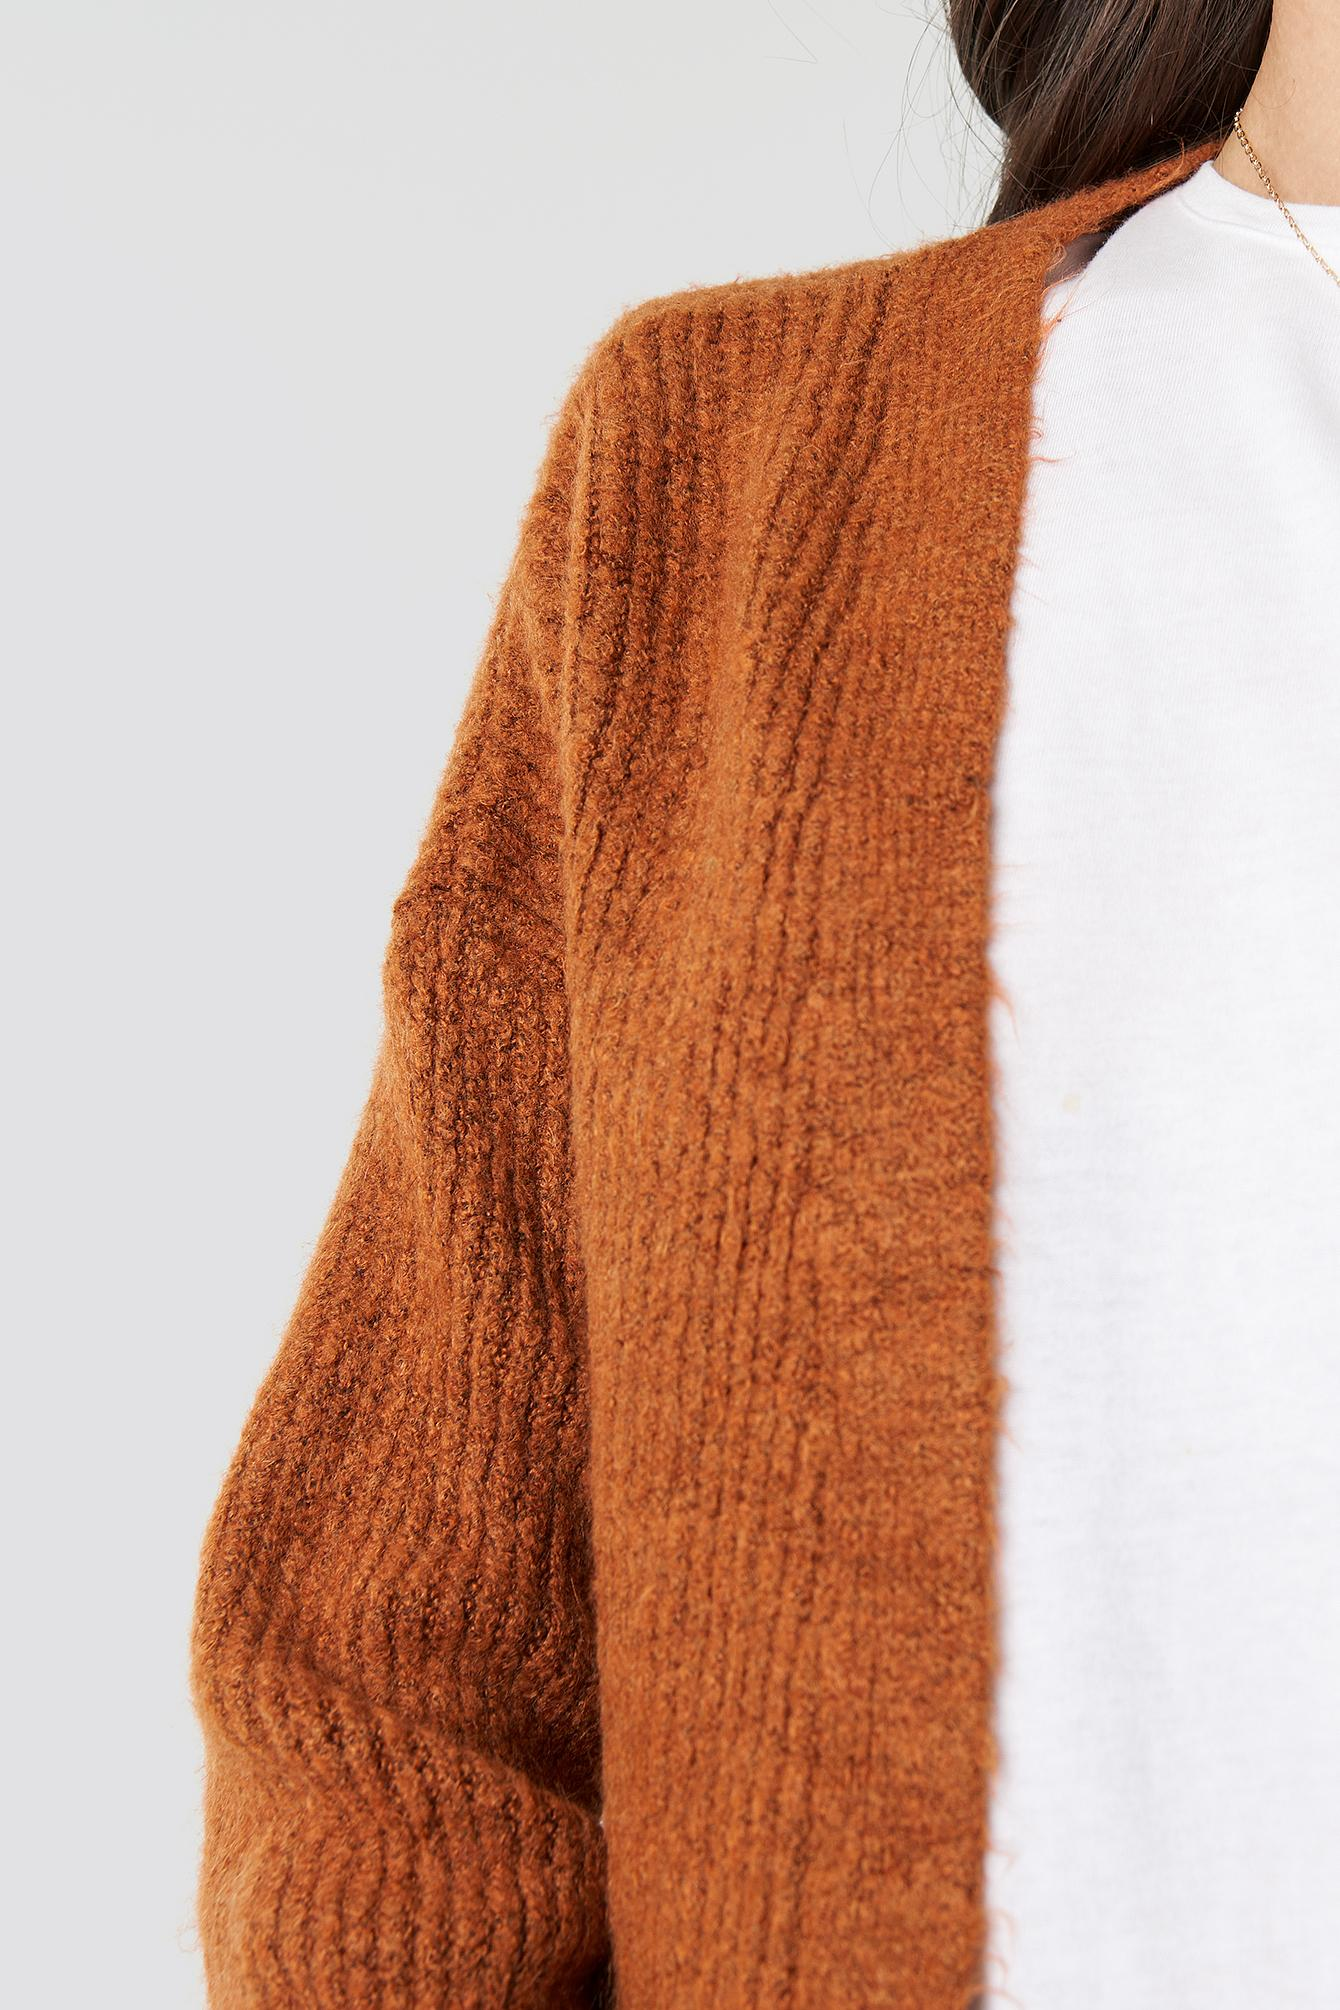 c217651db901ba ... Milla Knitted Cardigan Tobacco - Lyst. View fullscreen